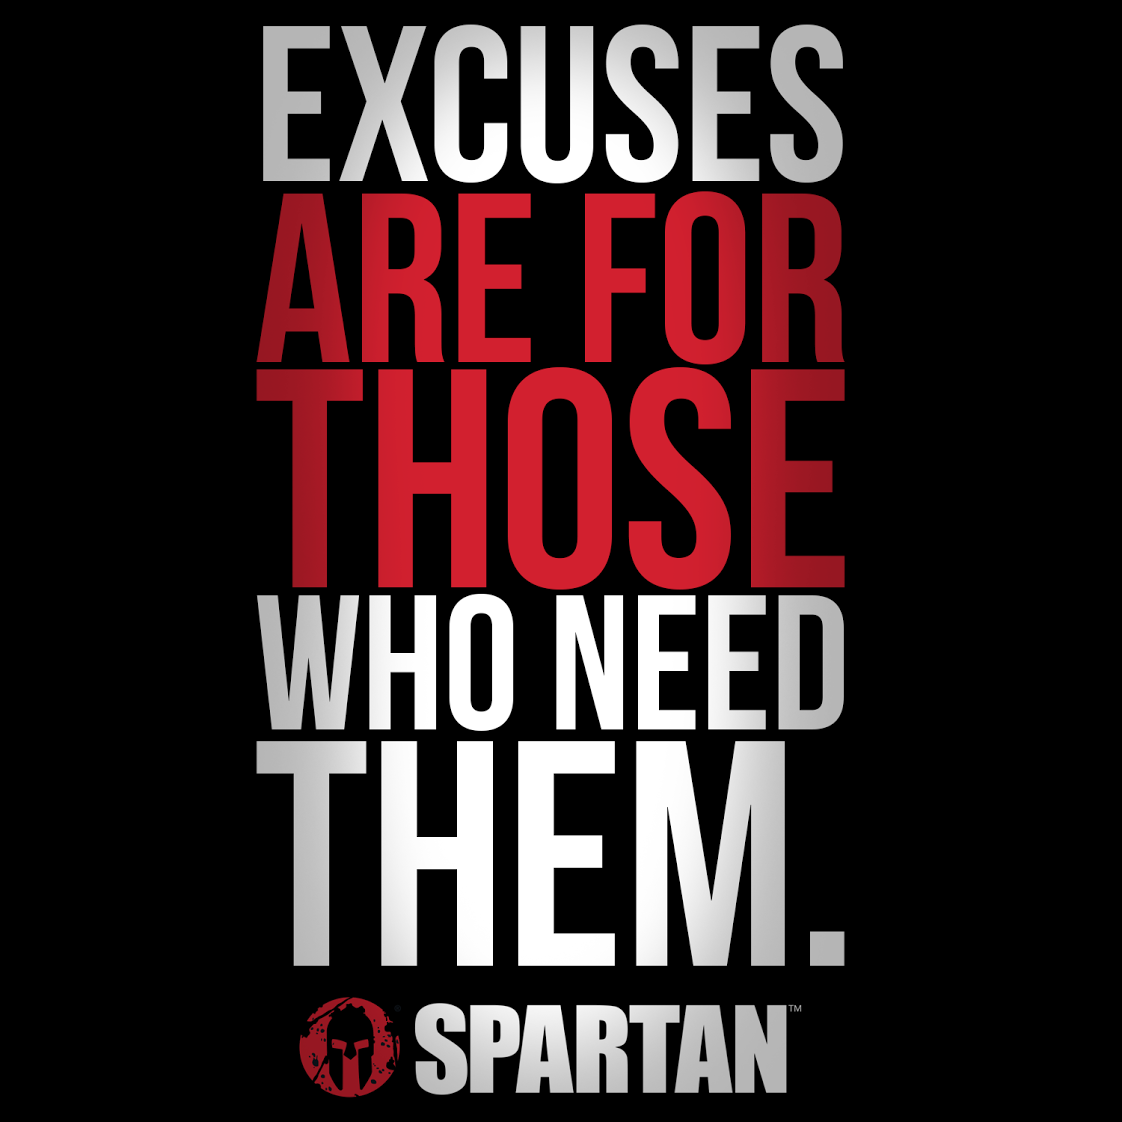 Spartan Race | iSpartan | Spartan quotes, Fitness motivation